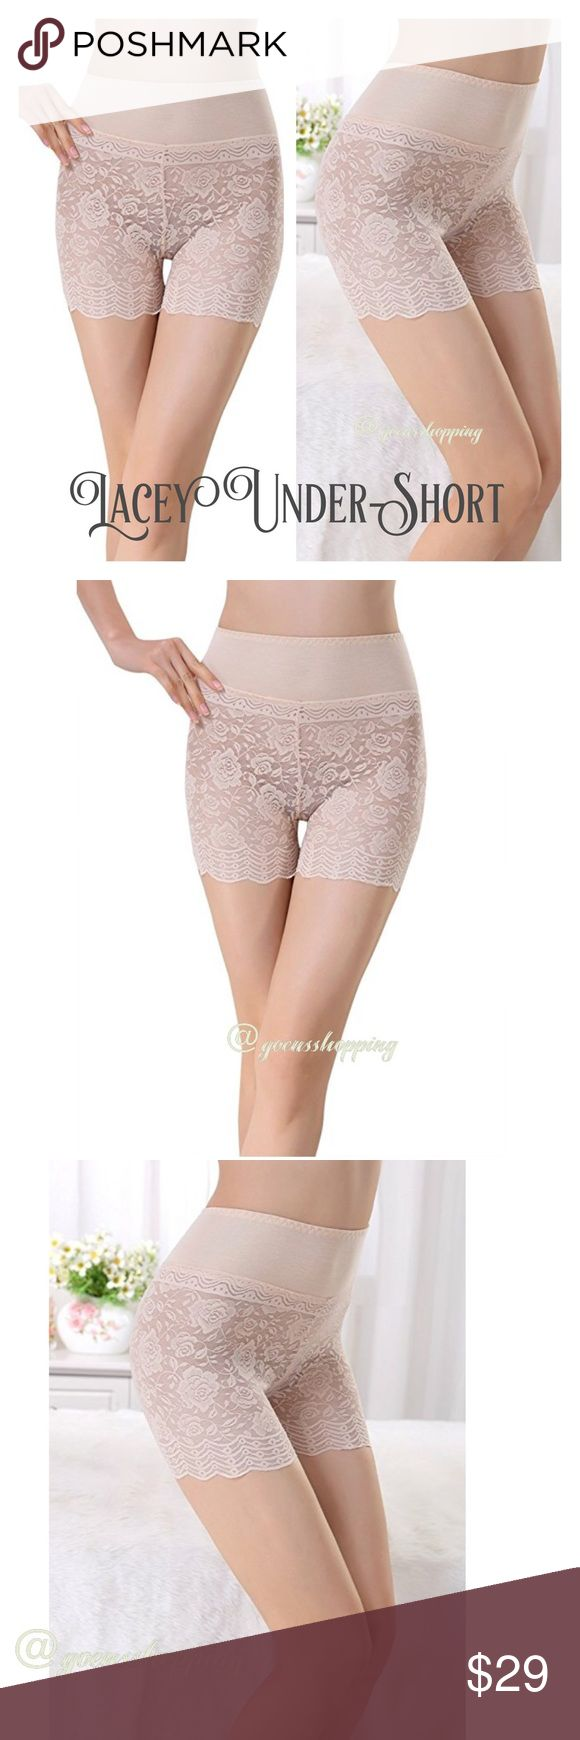 "Lacey Bo-ho Chic Nude Boy Short Leggings Women's Floral Lace Basic High Waist Safety Leggings Shorts Boyshorts OneSize in Skin. NIP! OSFM DISCLAIMER: These run small. I wear an XS and modeled my own pair for your comparison. Approx flat lay measurements: 11"" Waist / 13"" hip / 4"" inseam / 12"" full length. Sheer spandex lightweight fabric. Wear under your favorite shorts, dress or skirt. Please let me know if you have any questions. 30% discount when bundling. No trades! Goensshopping…"